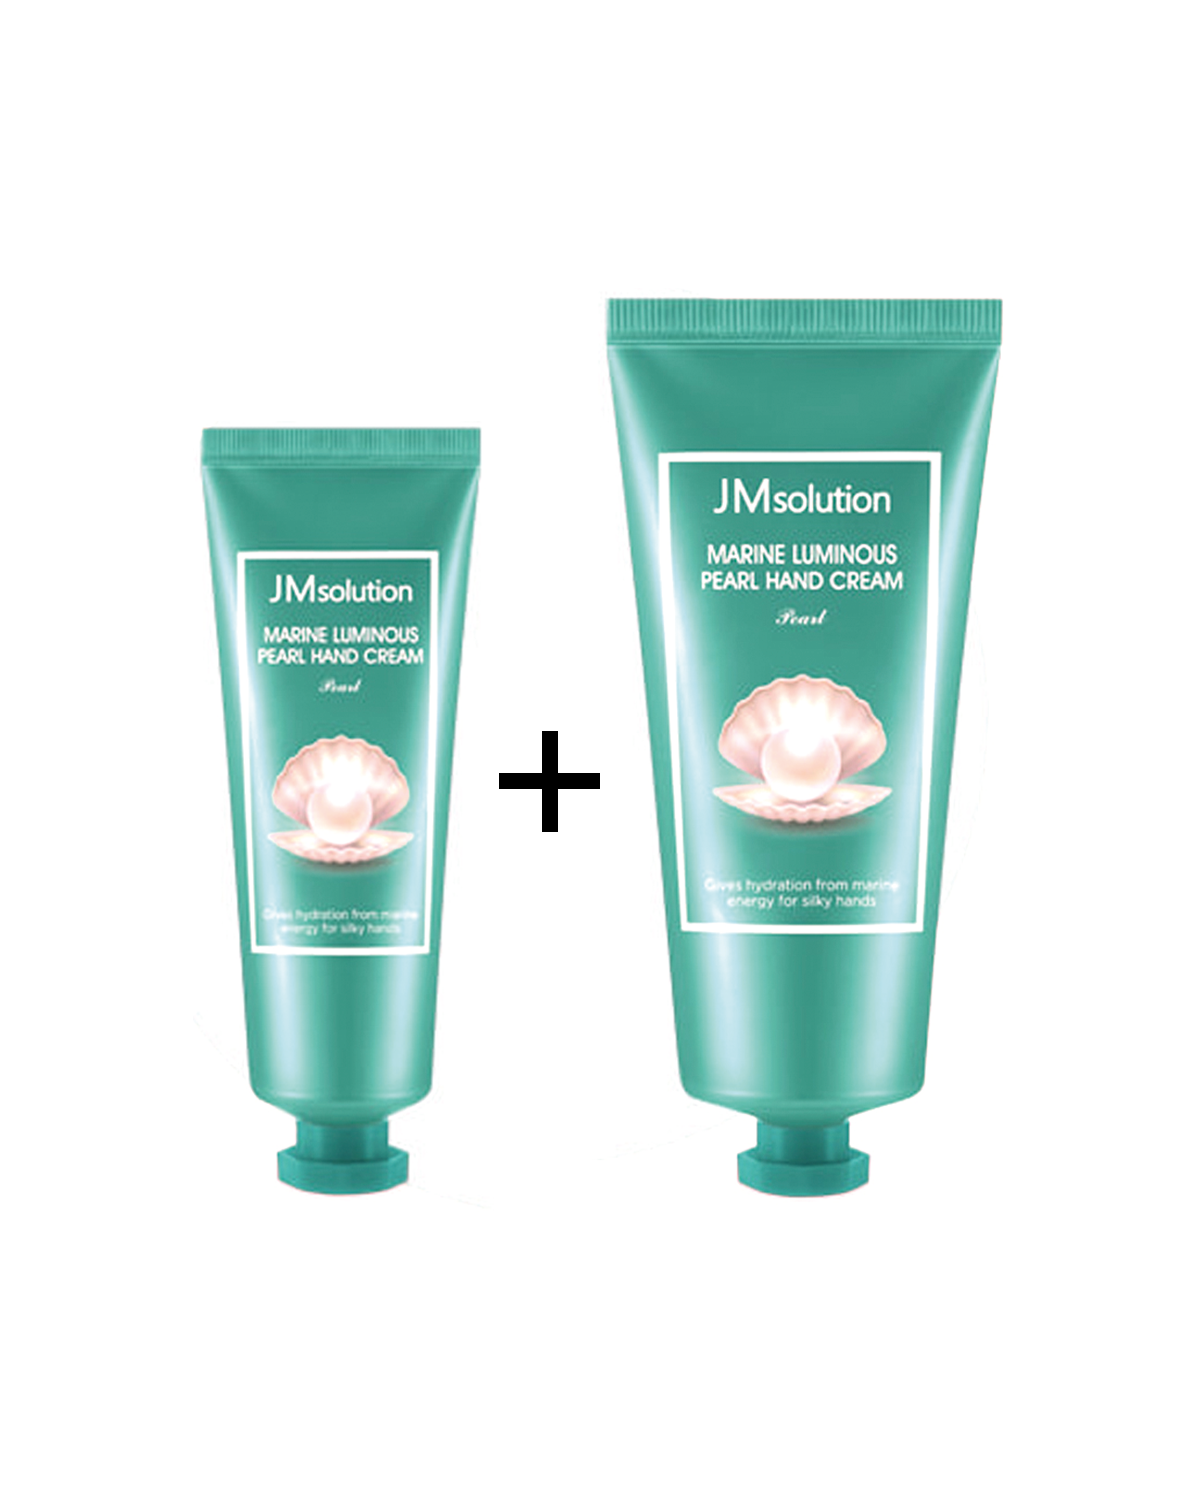 JM SOLUTION Marine Luminous Pearl Hand Cream 100 ml + 50 ml